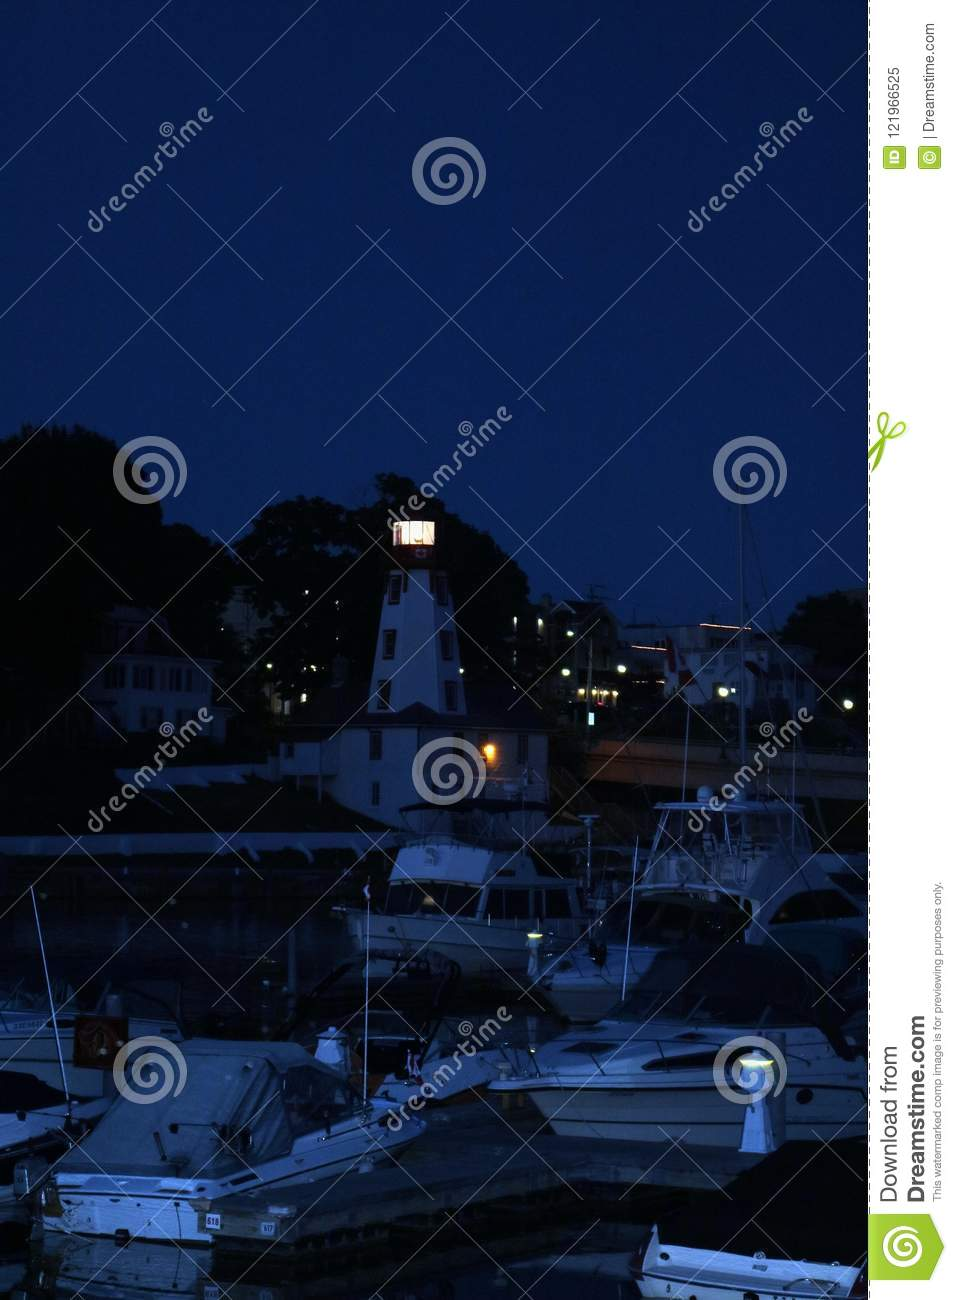 Kincardine Lighthouse Lights Up The Night Stock Image - Image of